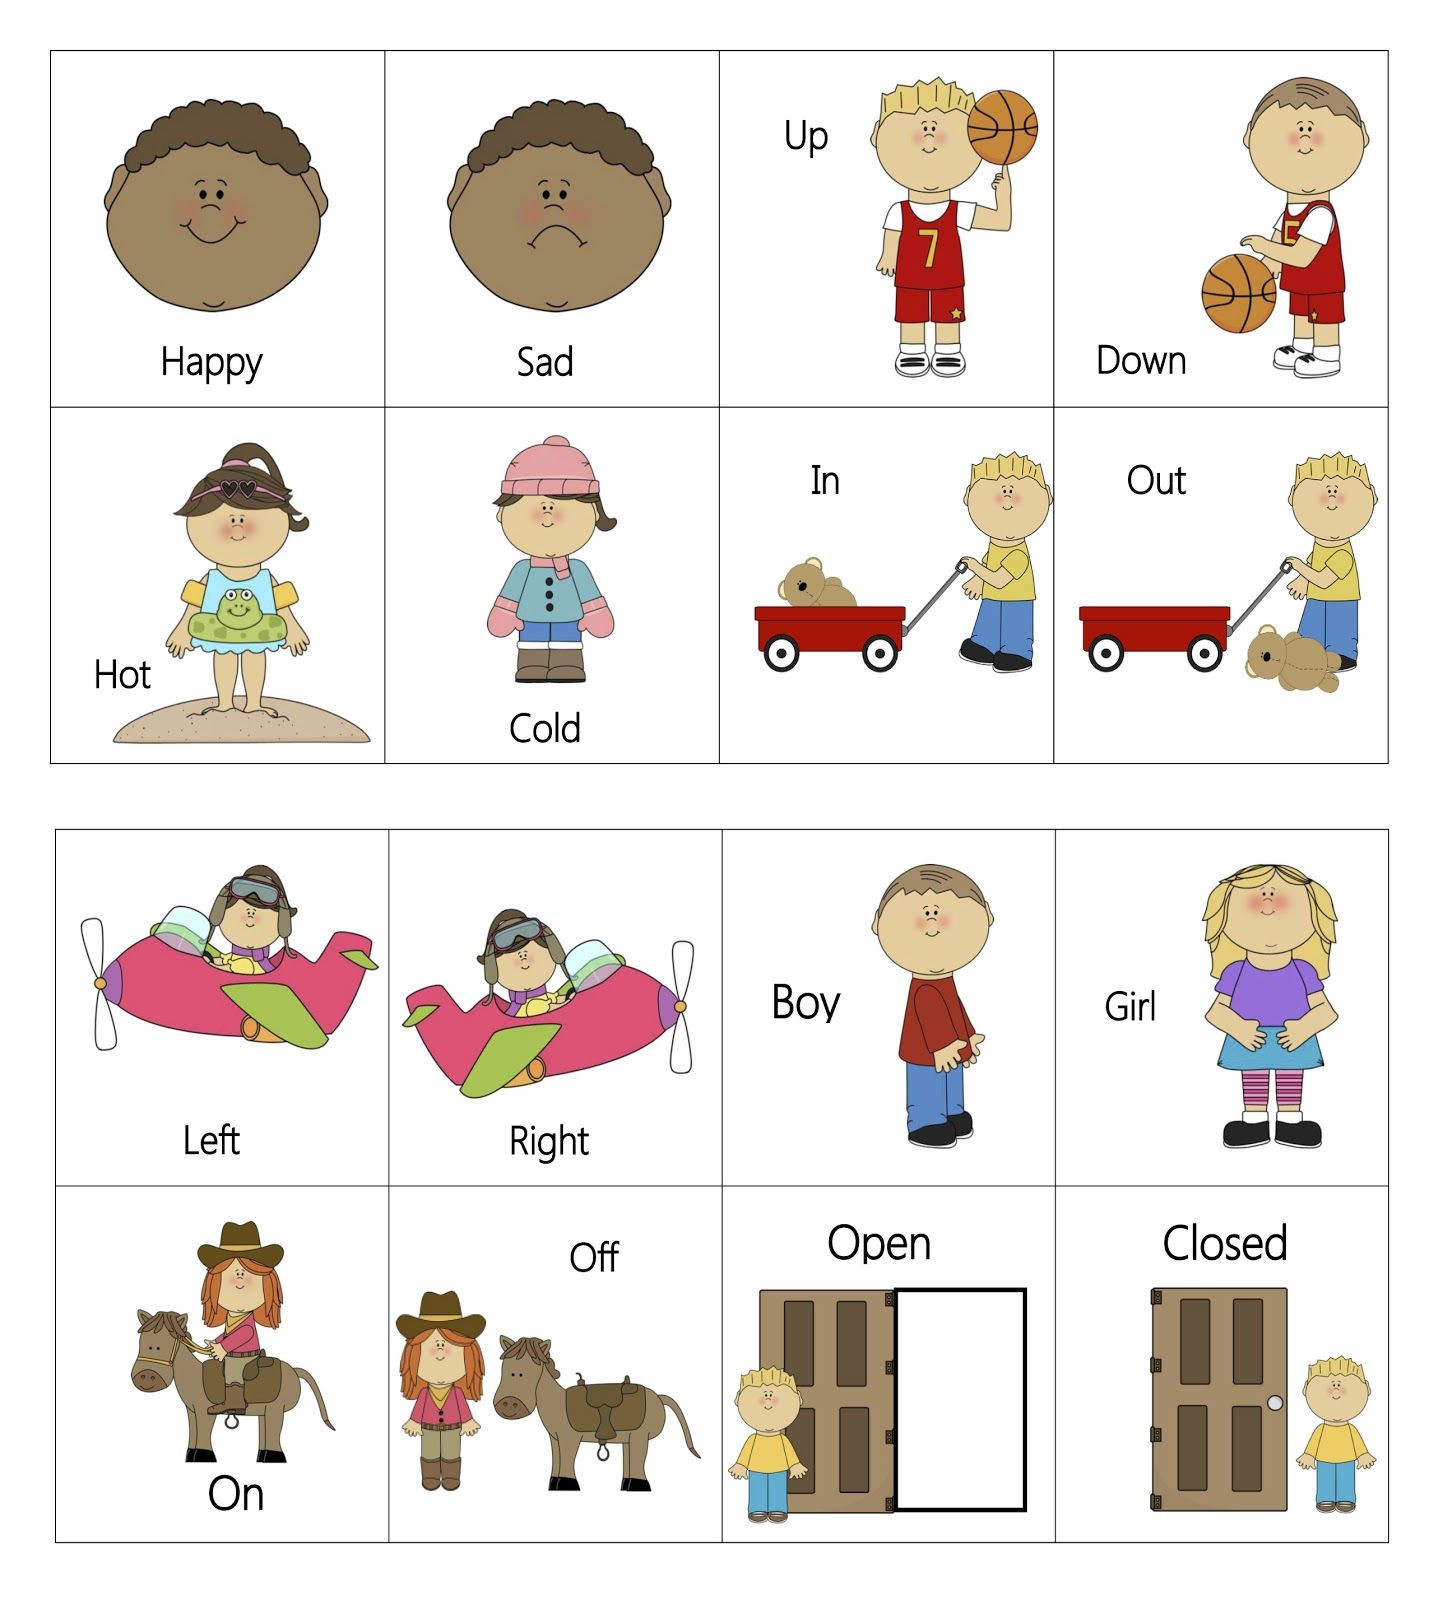 Opposites Worksheet for Preschool Free Printable Everyday Opposites Flashcards